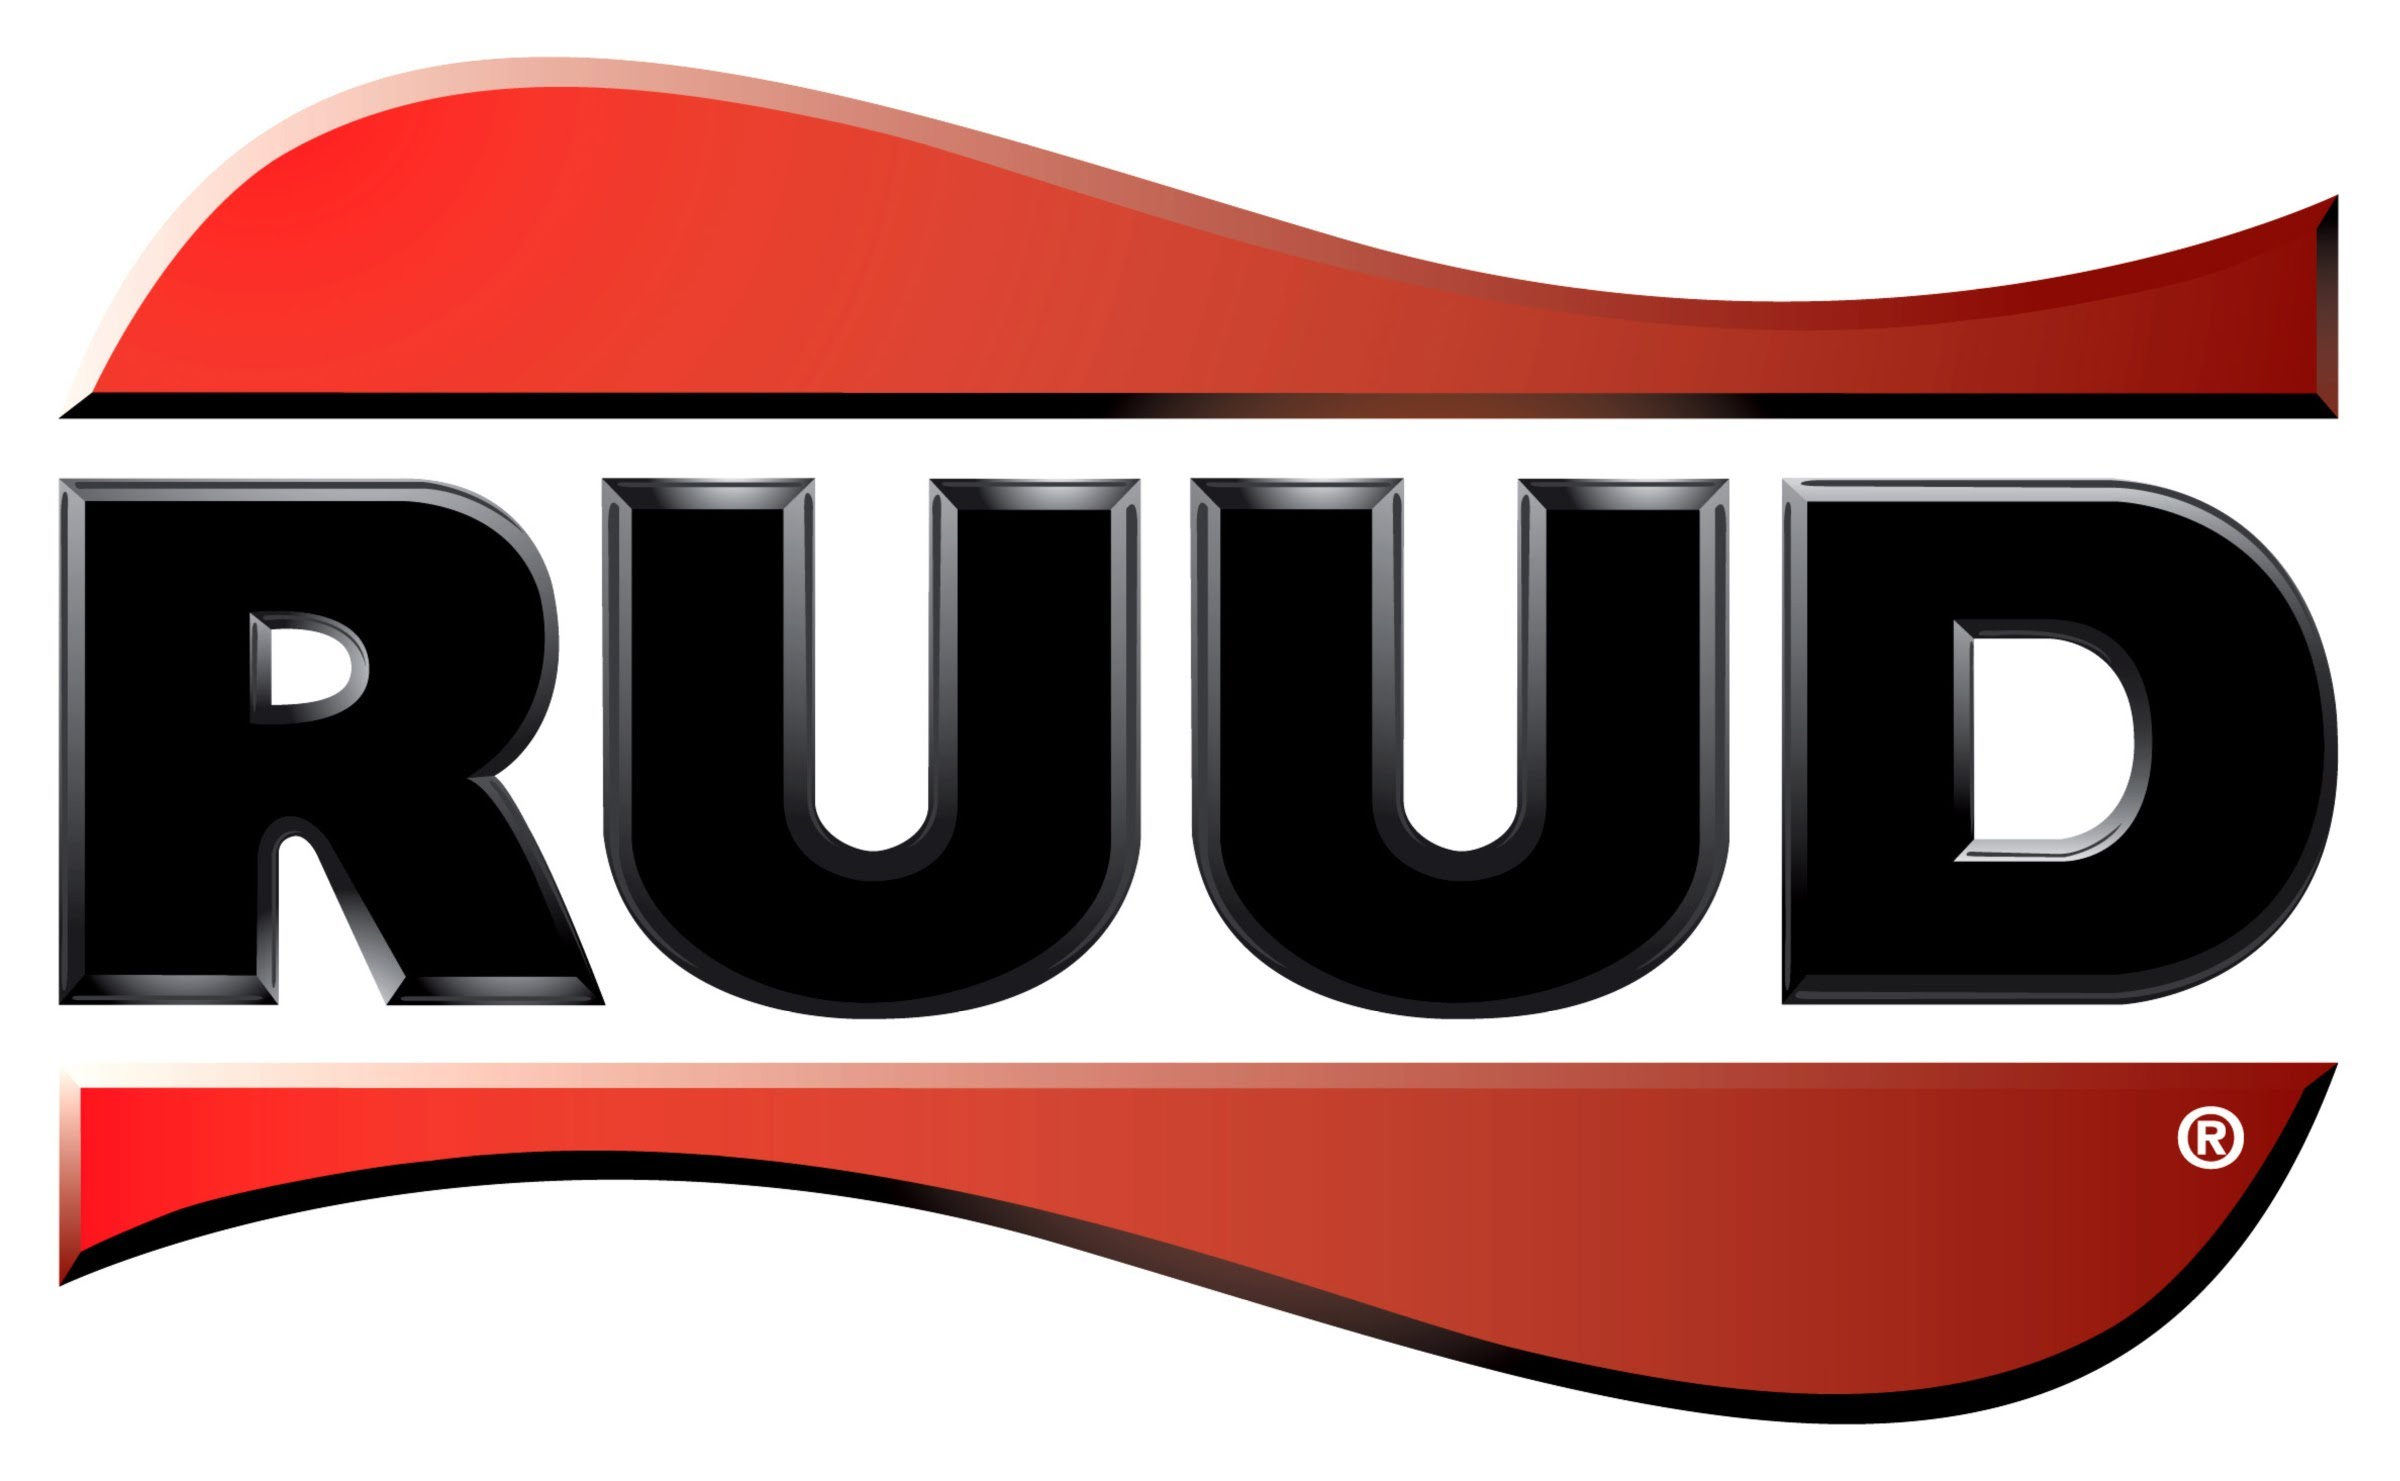 prescott valley is a ruud hvac dealer